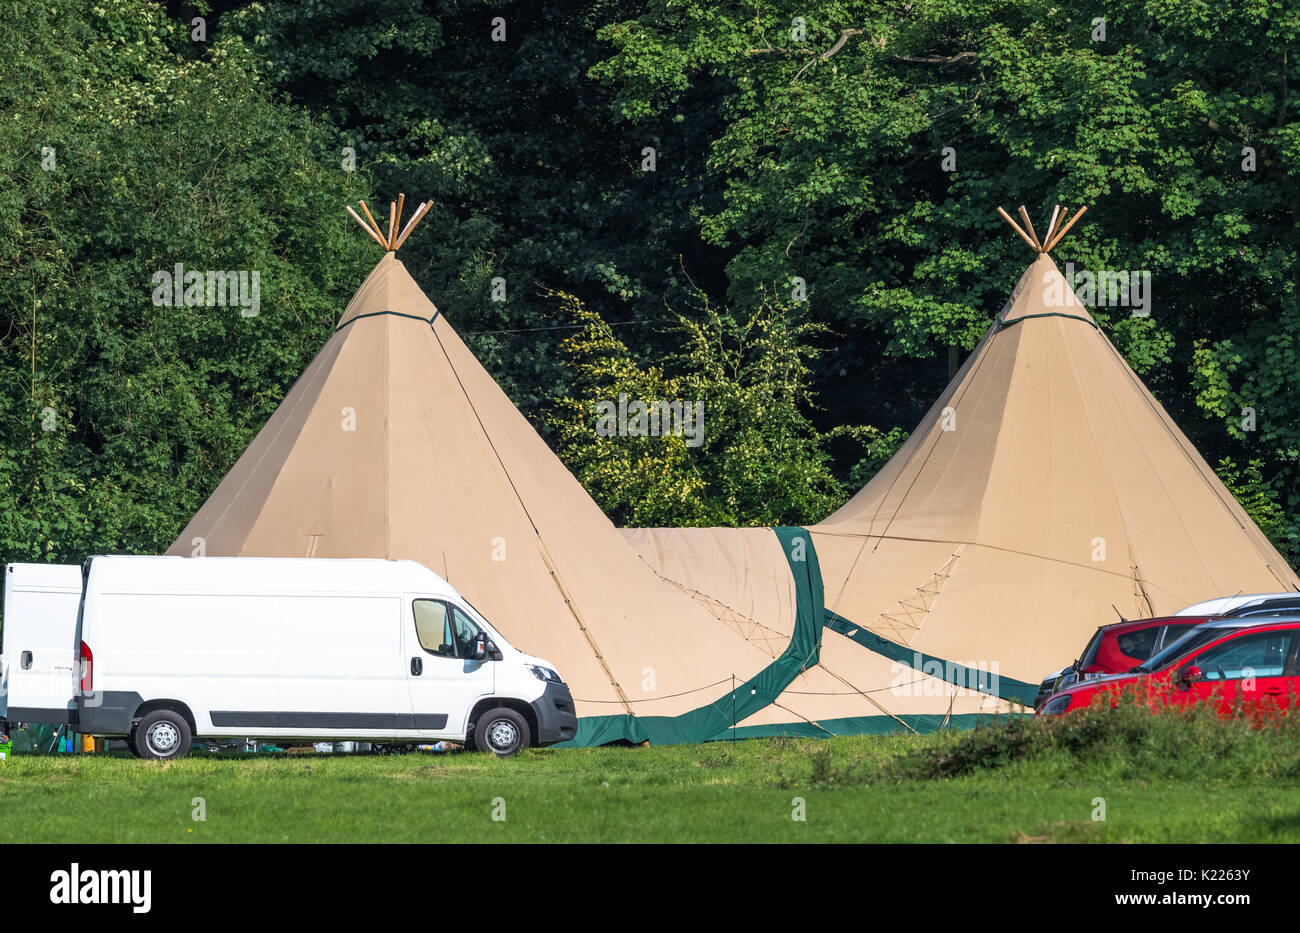 Two large tepees in a field ready for an event. - Stock Image